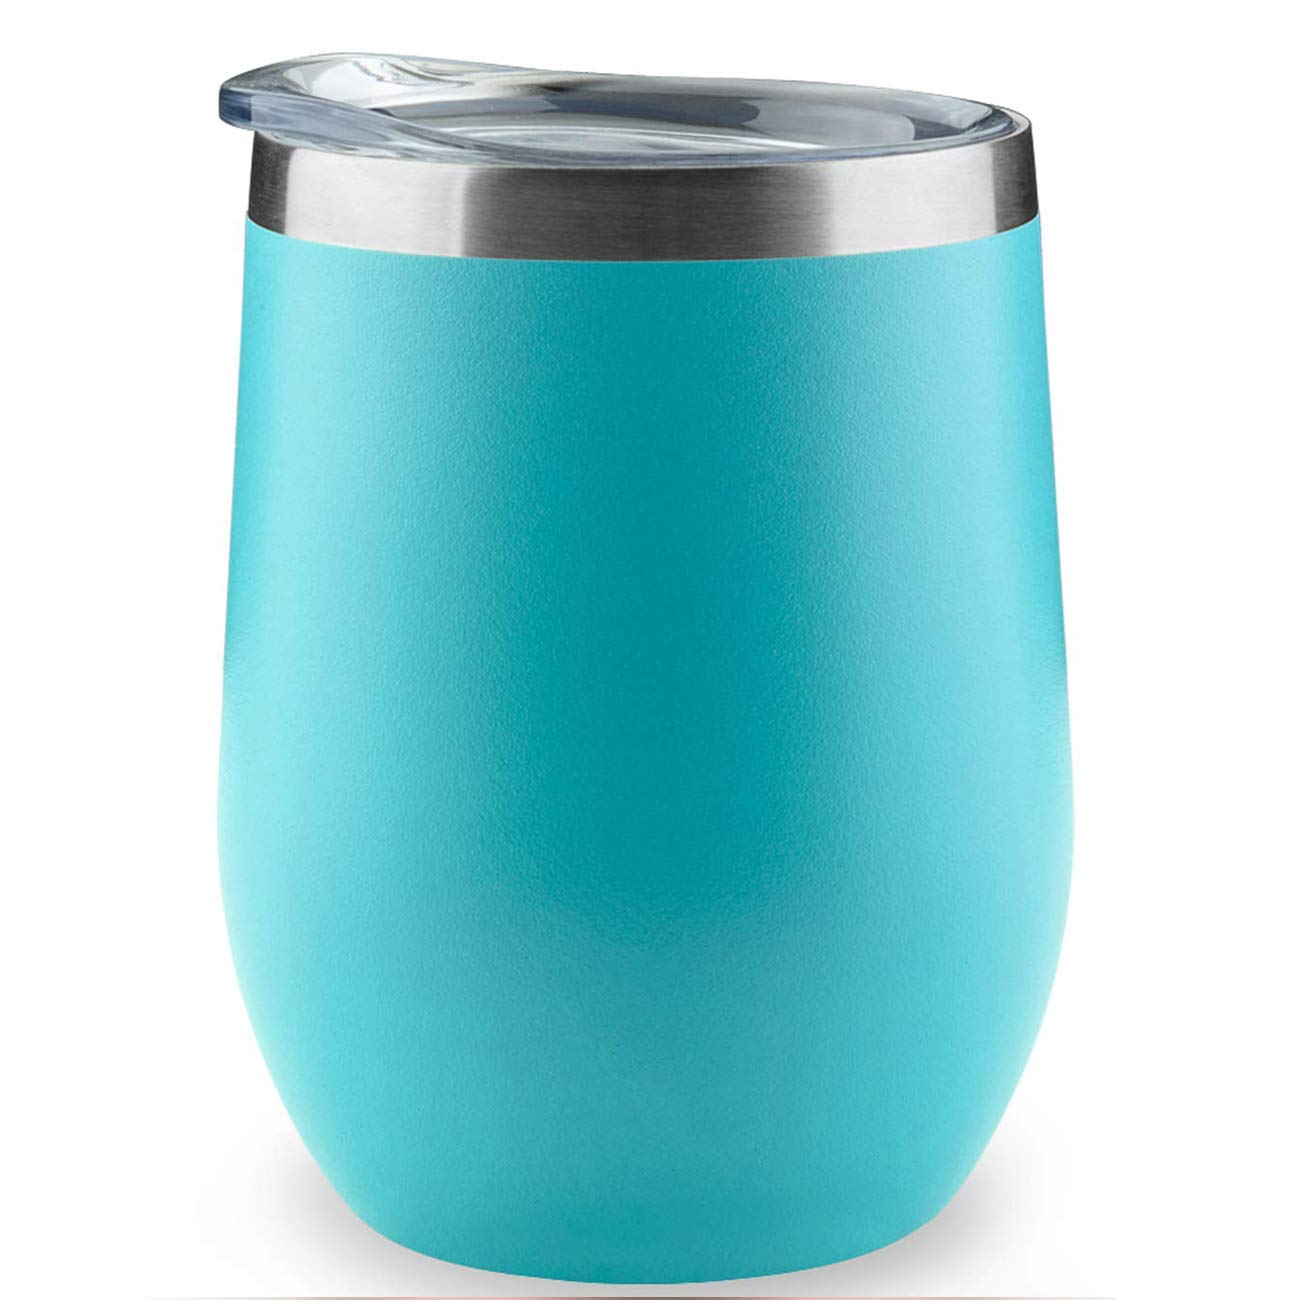 COMOOO Stainless Steel Wine Tumbler with Lid 12OZ-Double Wall Vacuum Insulated Travel Tumbler Cup for Coffee Wine Cocktails Ice Cream Cup With Lid (Blue, 1)